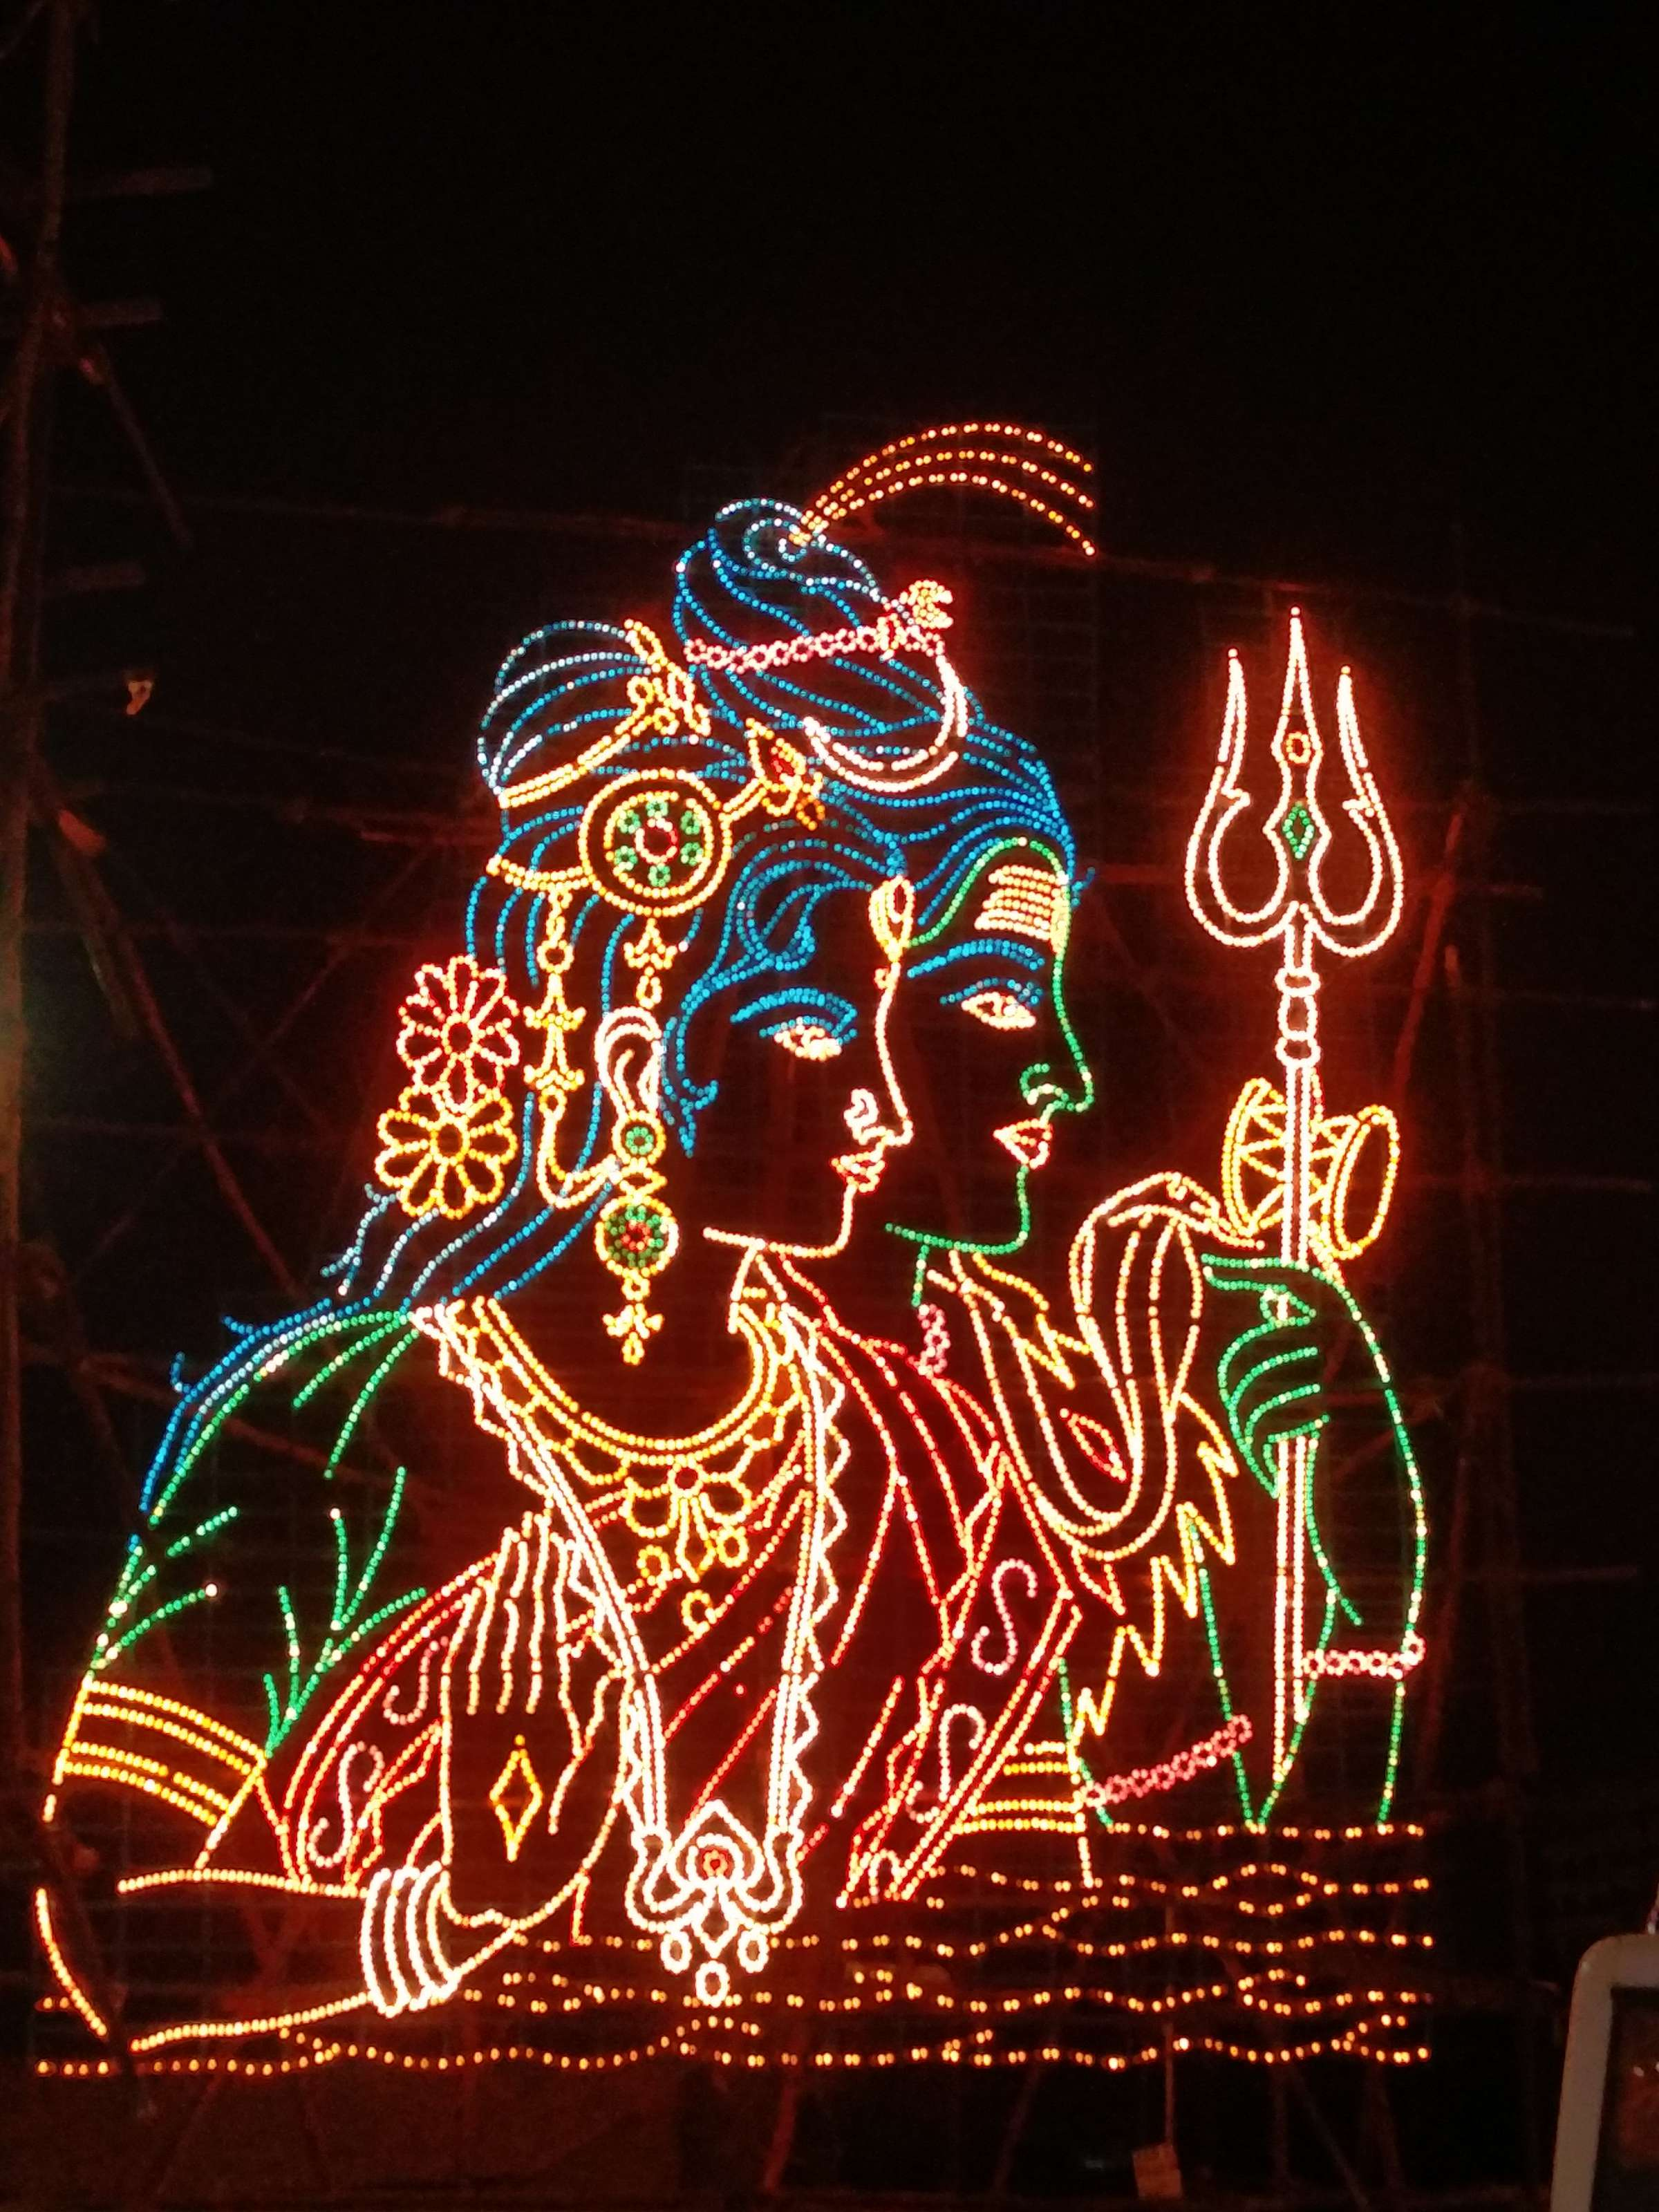 A depiction of Shiva and his wife Parvati.